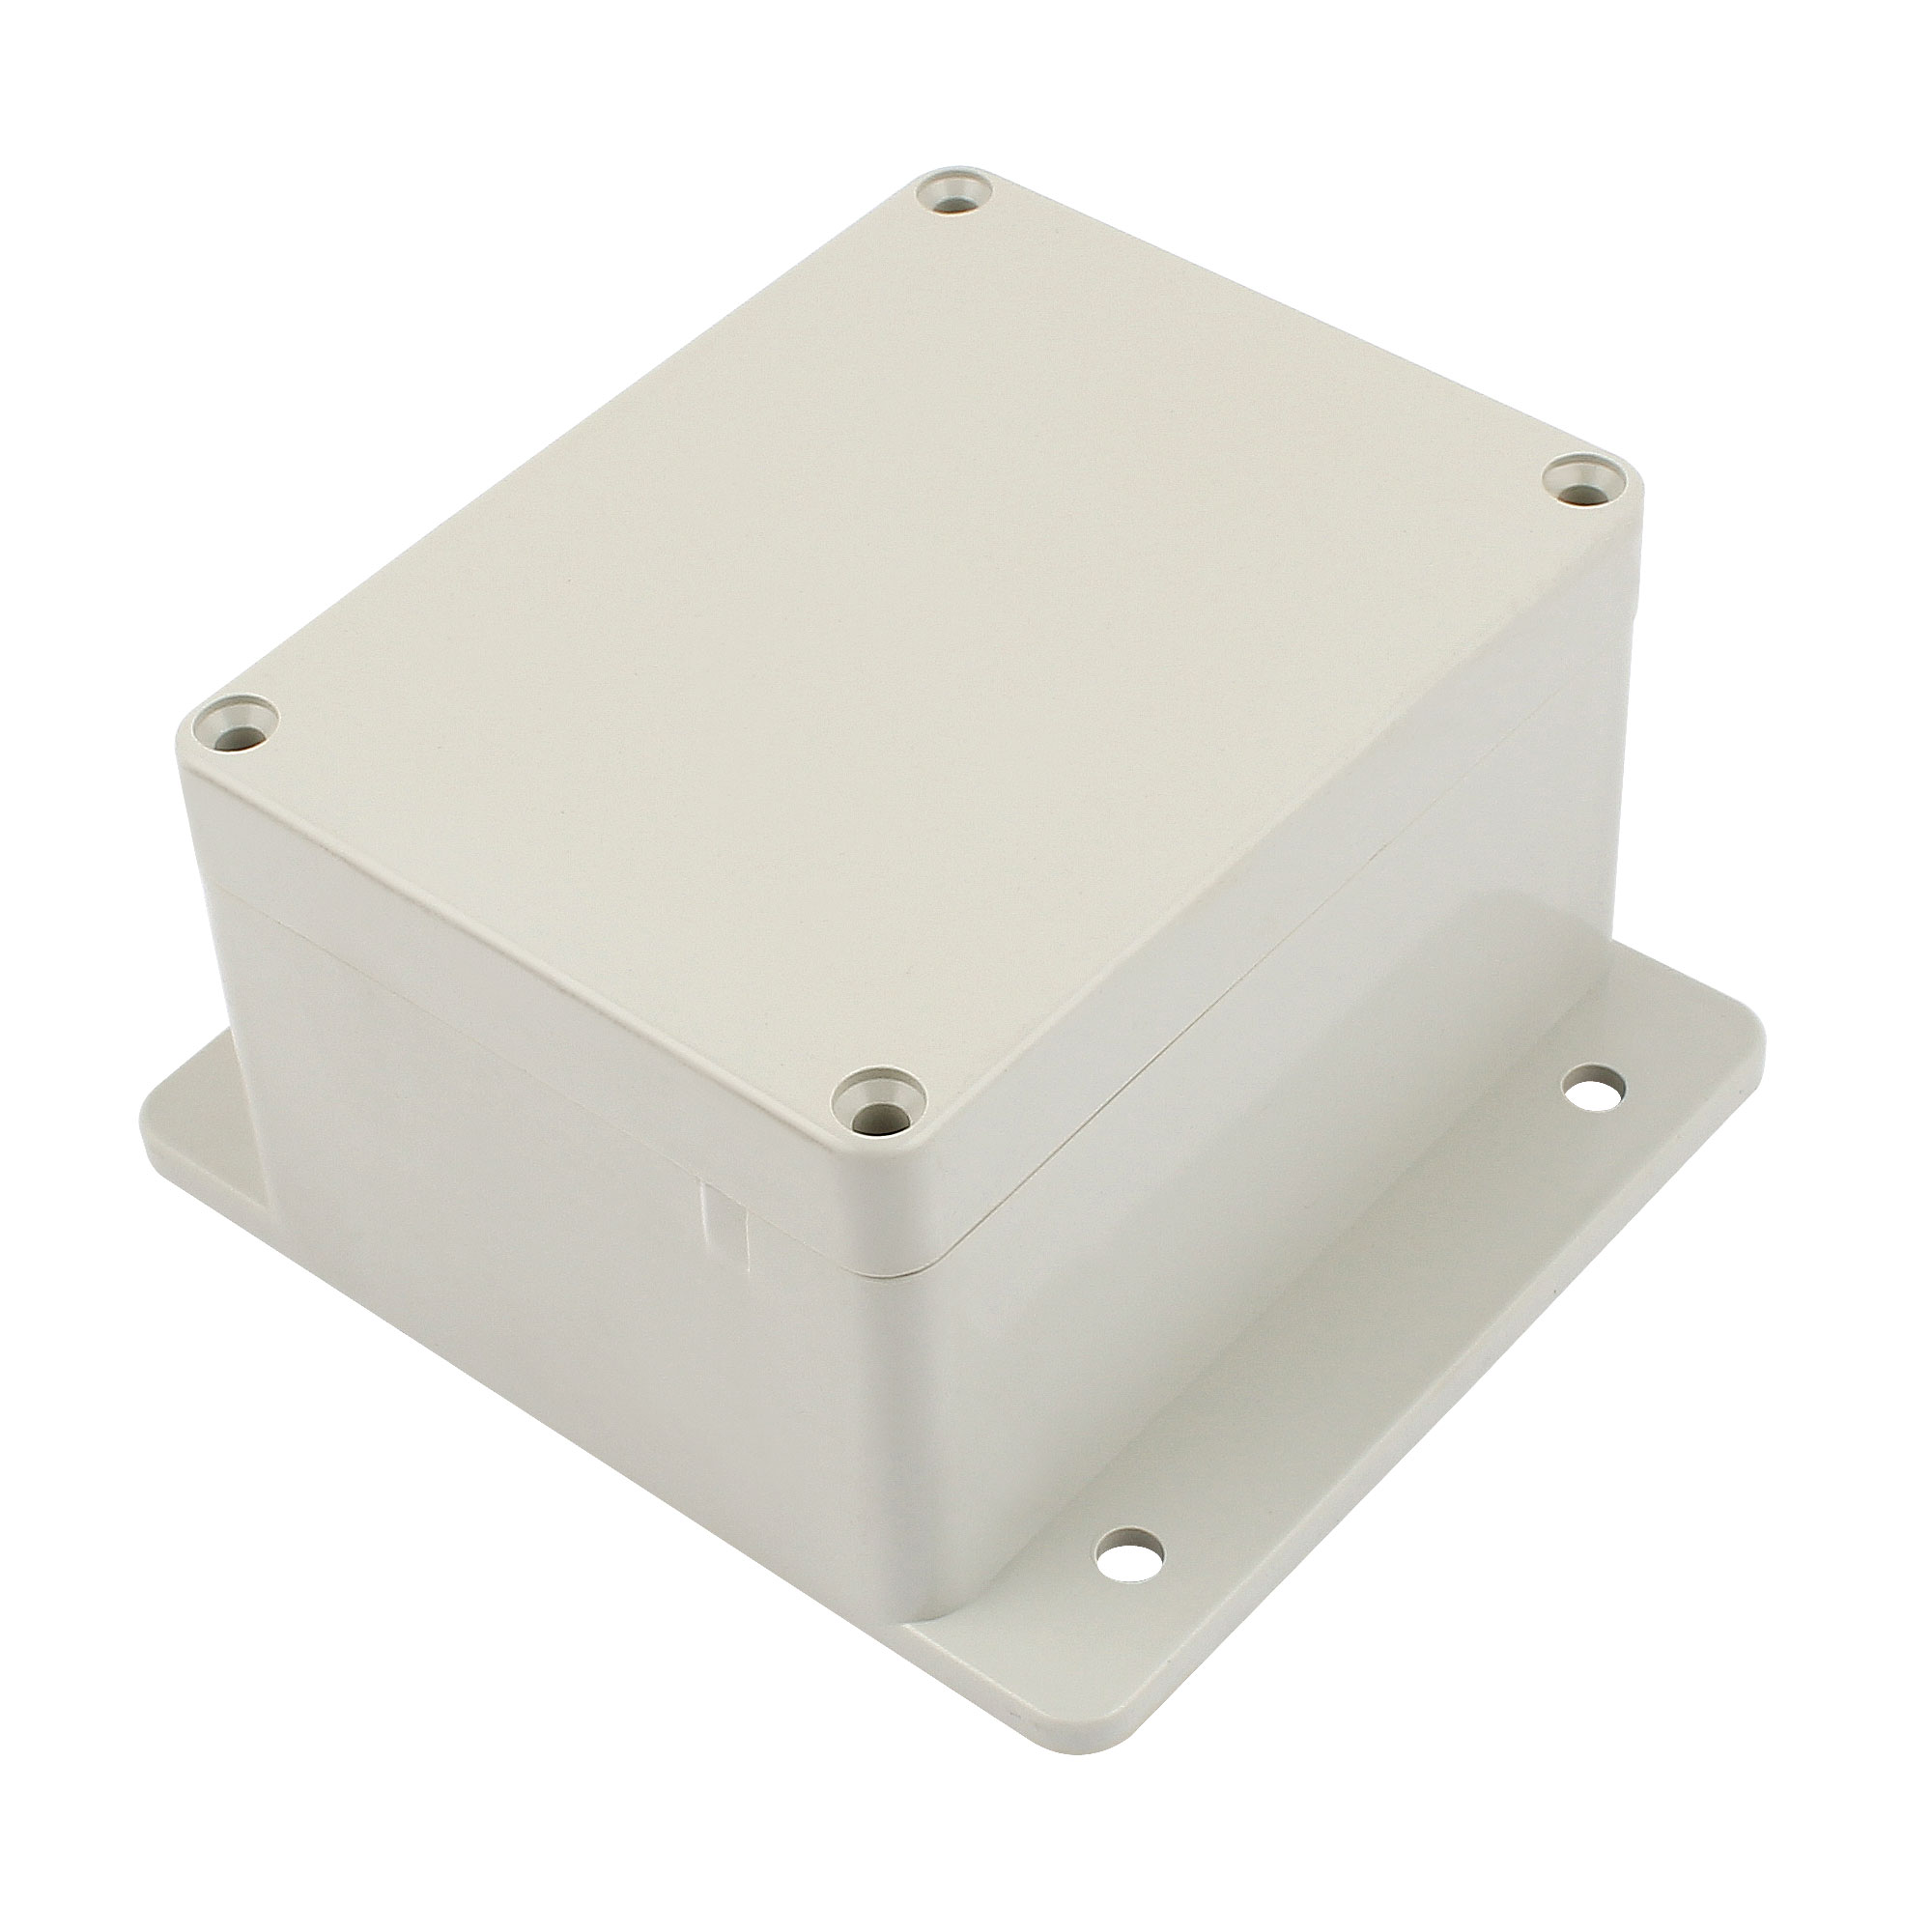 115mm x 90mm x 70mm Plastic Dustproof IP65 Sealed DIY Joint Electrical Junction Box